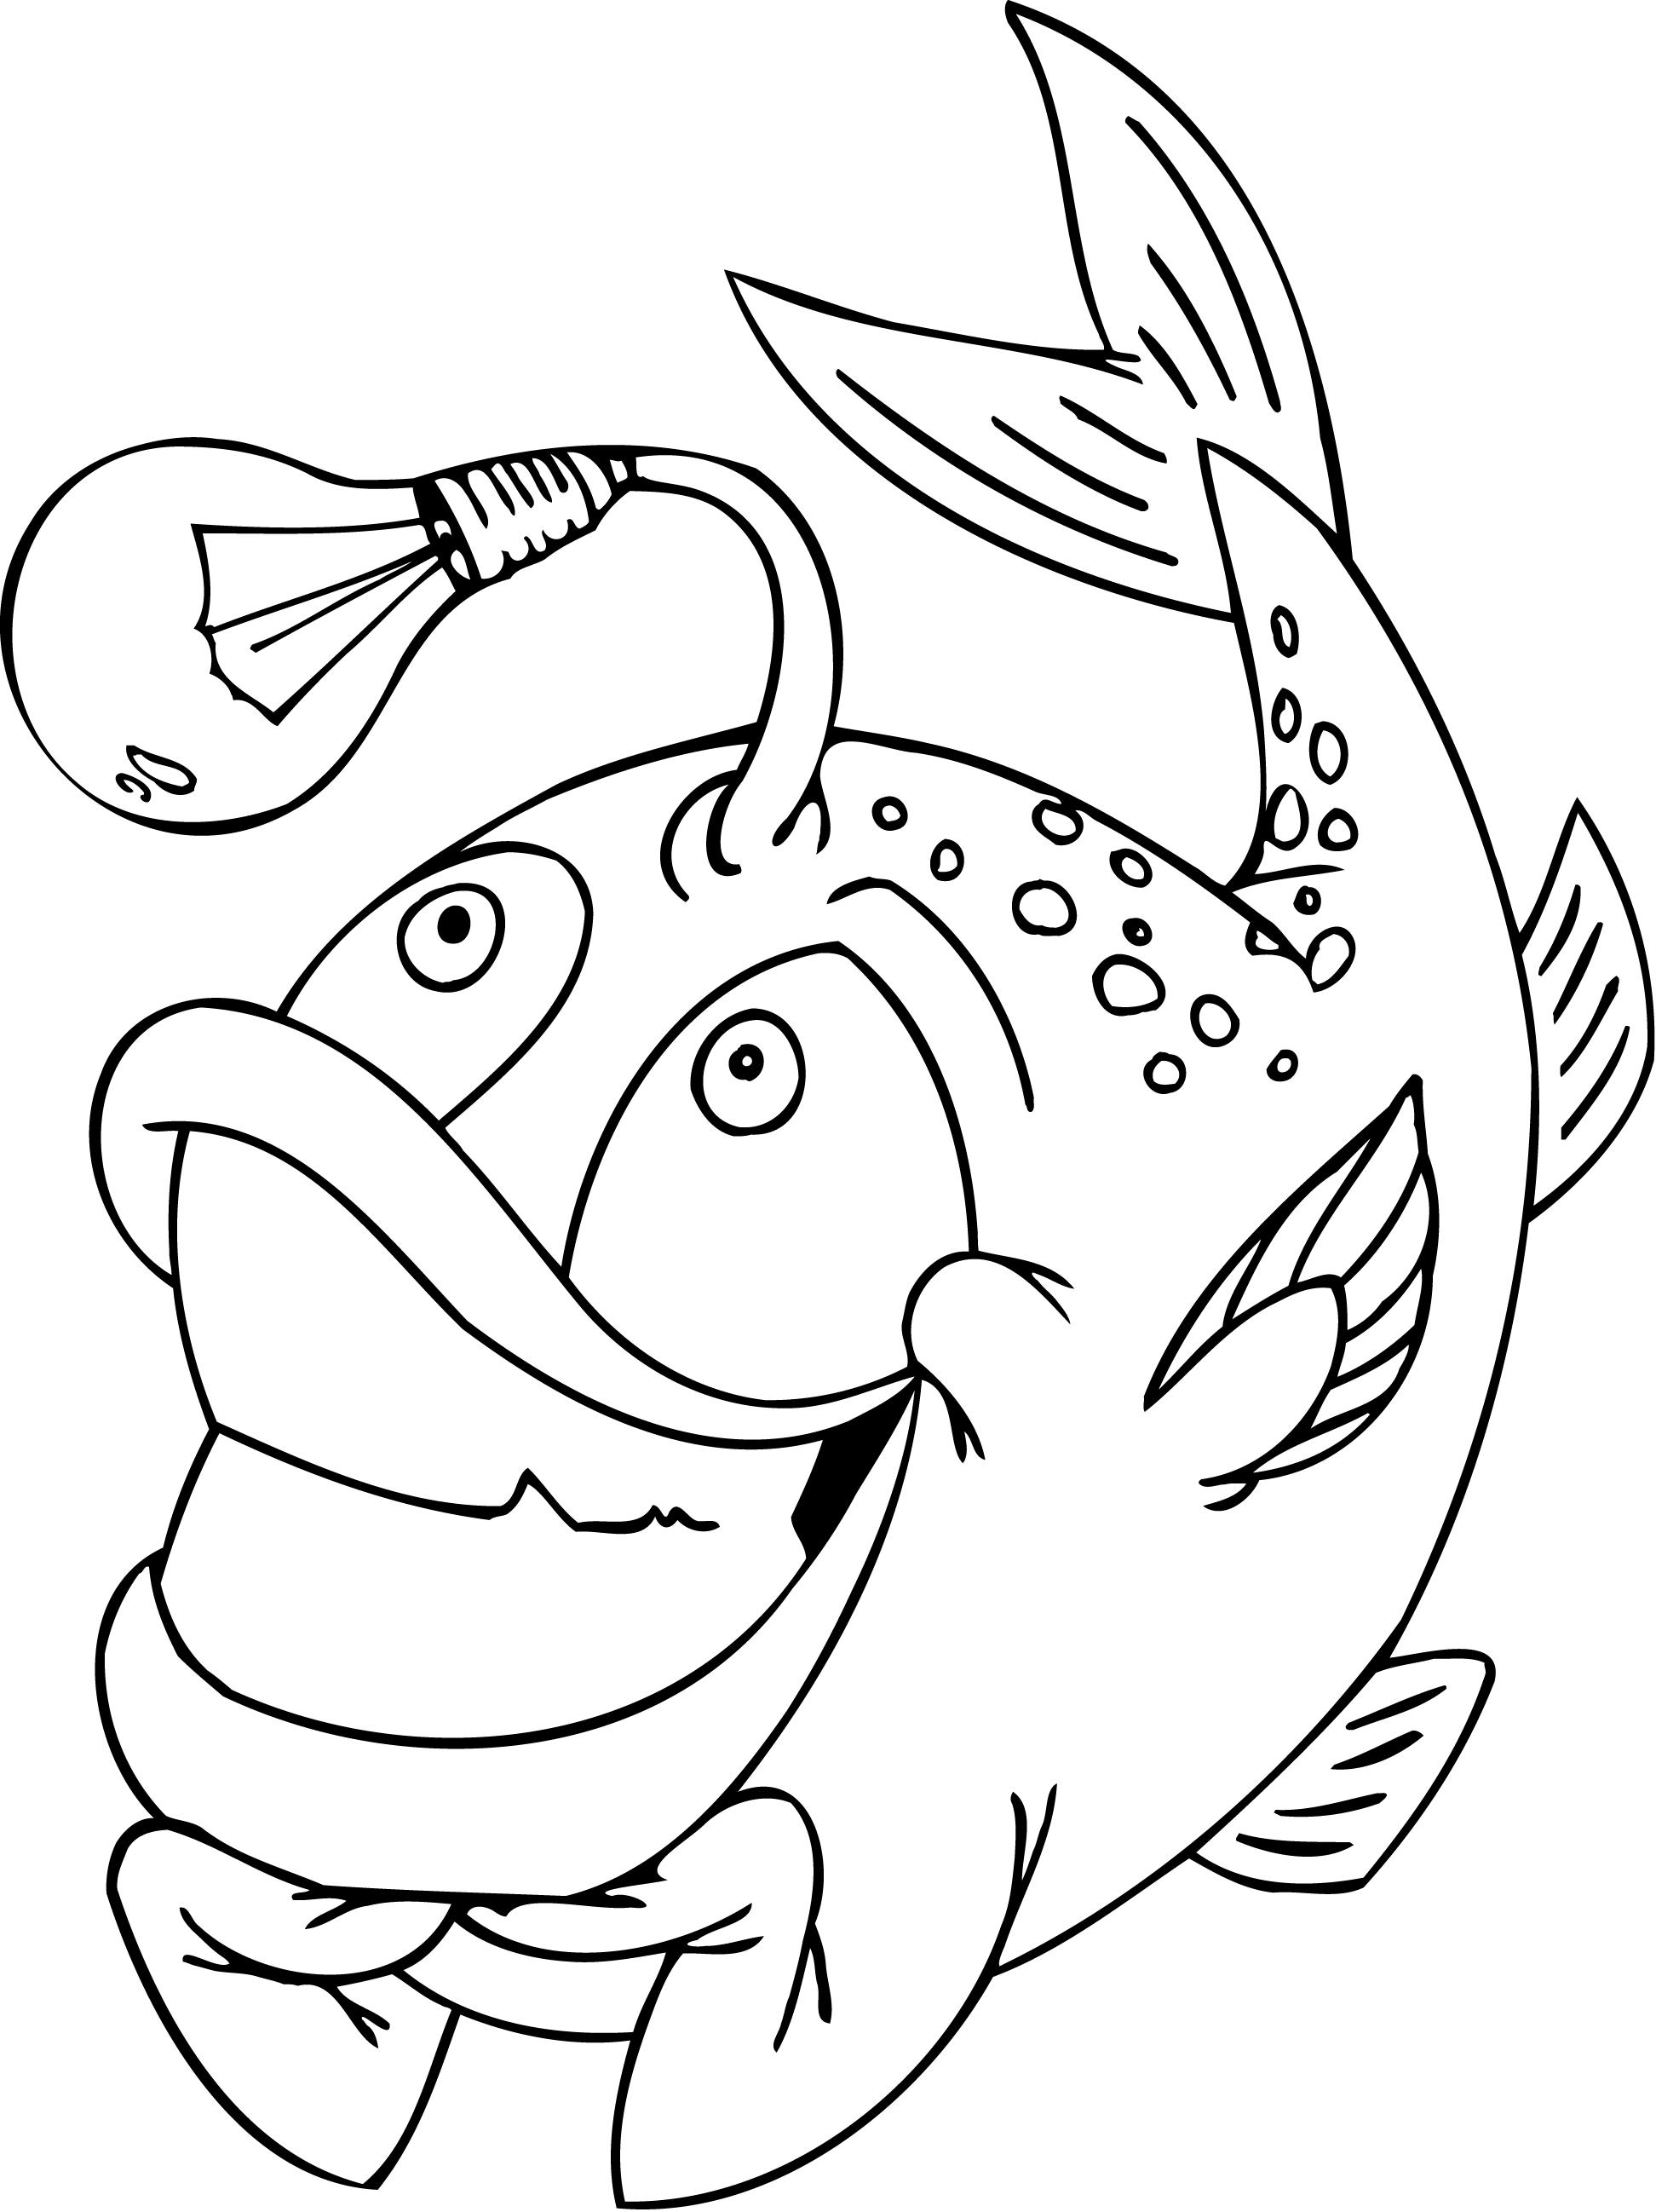 kids coloring cartoon kids next door color page coloring pages for kids kids coloring cartoon